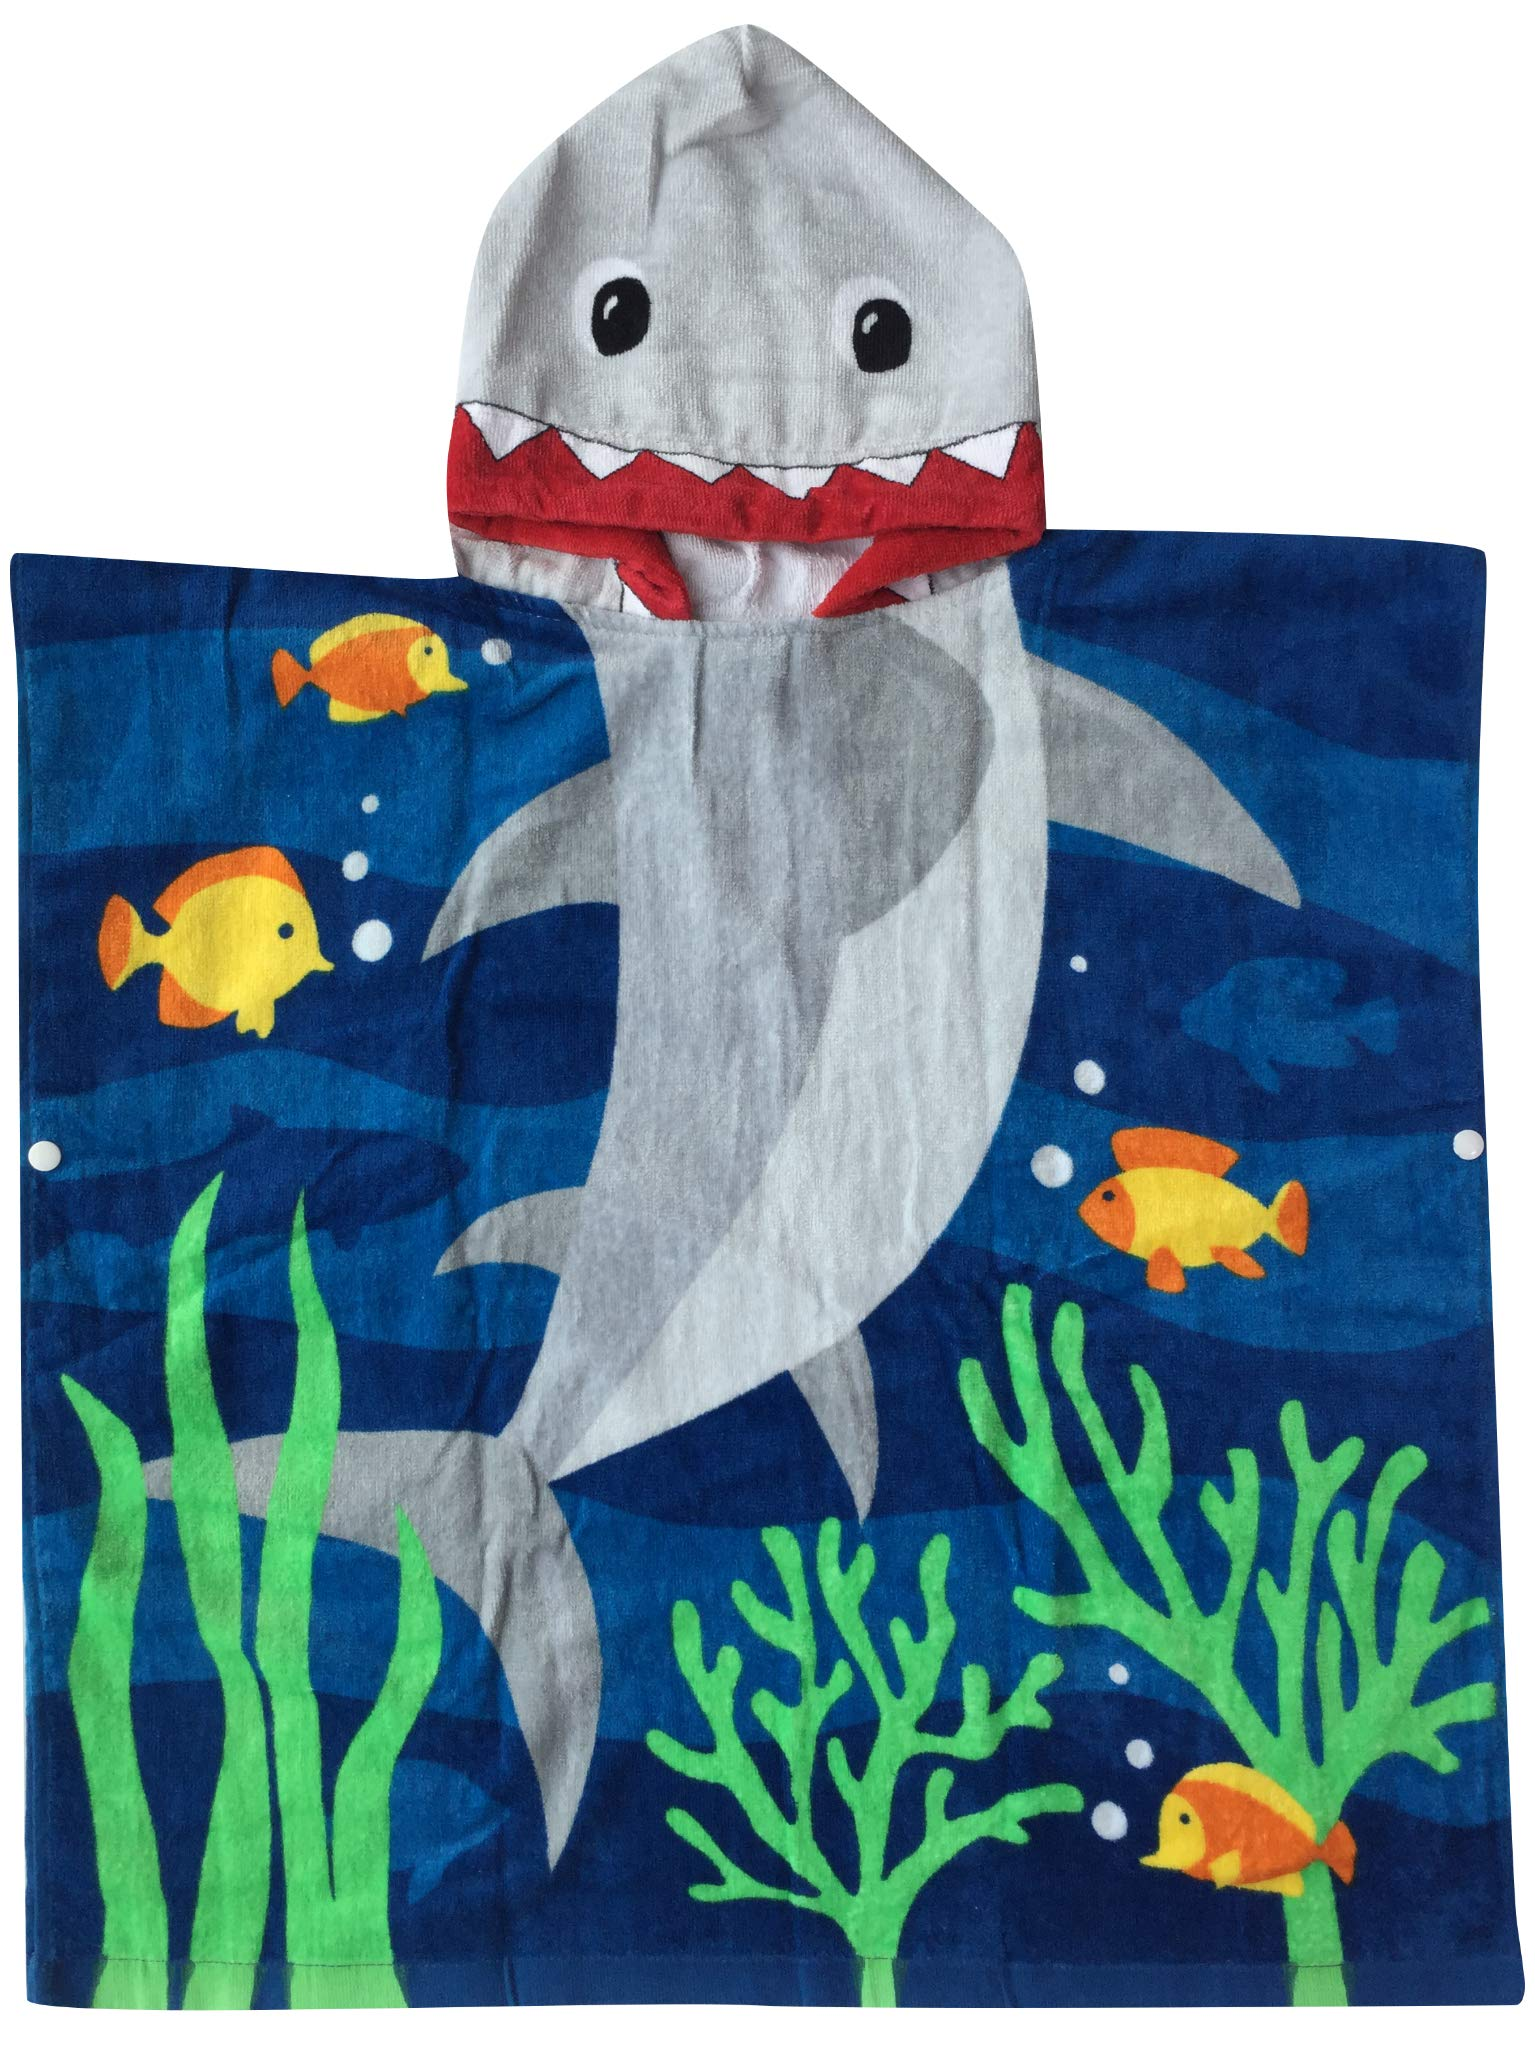 Kids Bath Towel for Girls After Bath Hooded Baby Towel Soft /& Absorbent Beach or Swim 100/% Cotton Kids Towels with Hood L JAMORGANIC Hooded Towels for Girls Mermaid Theme W X 48 24